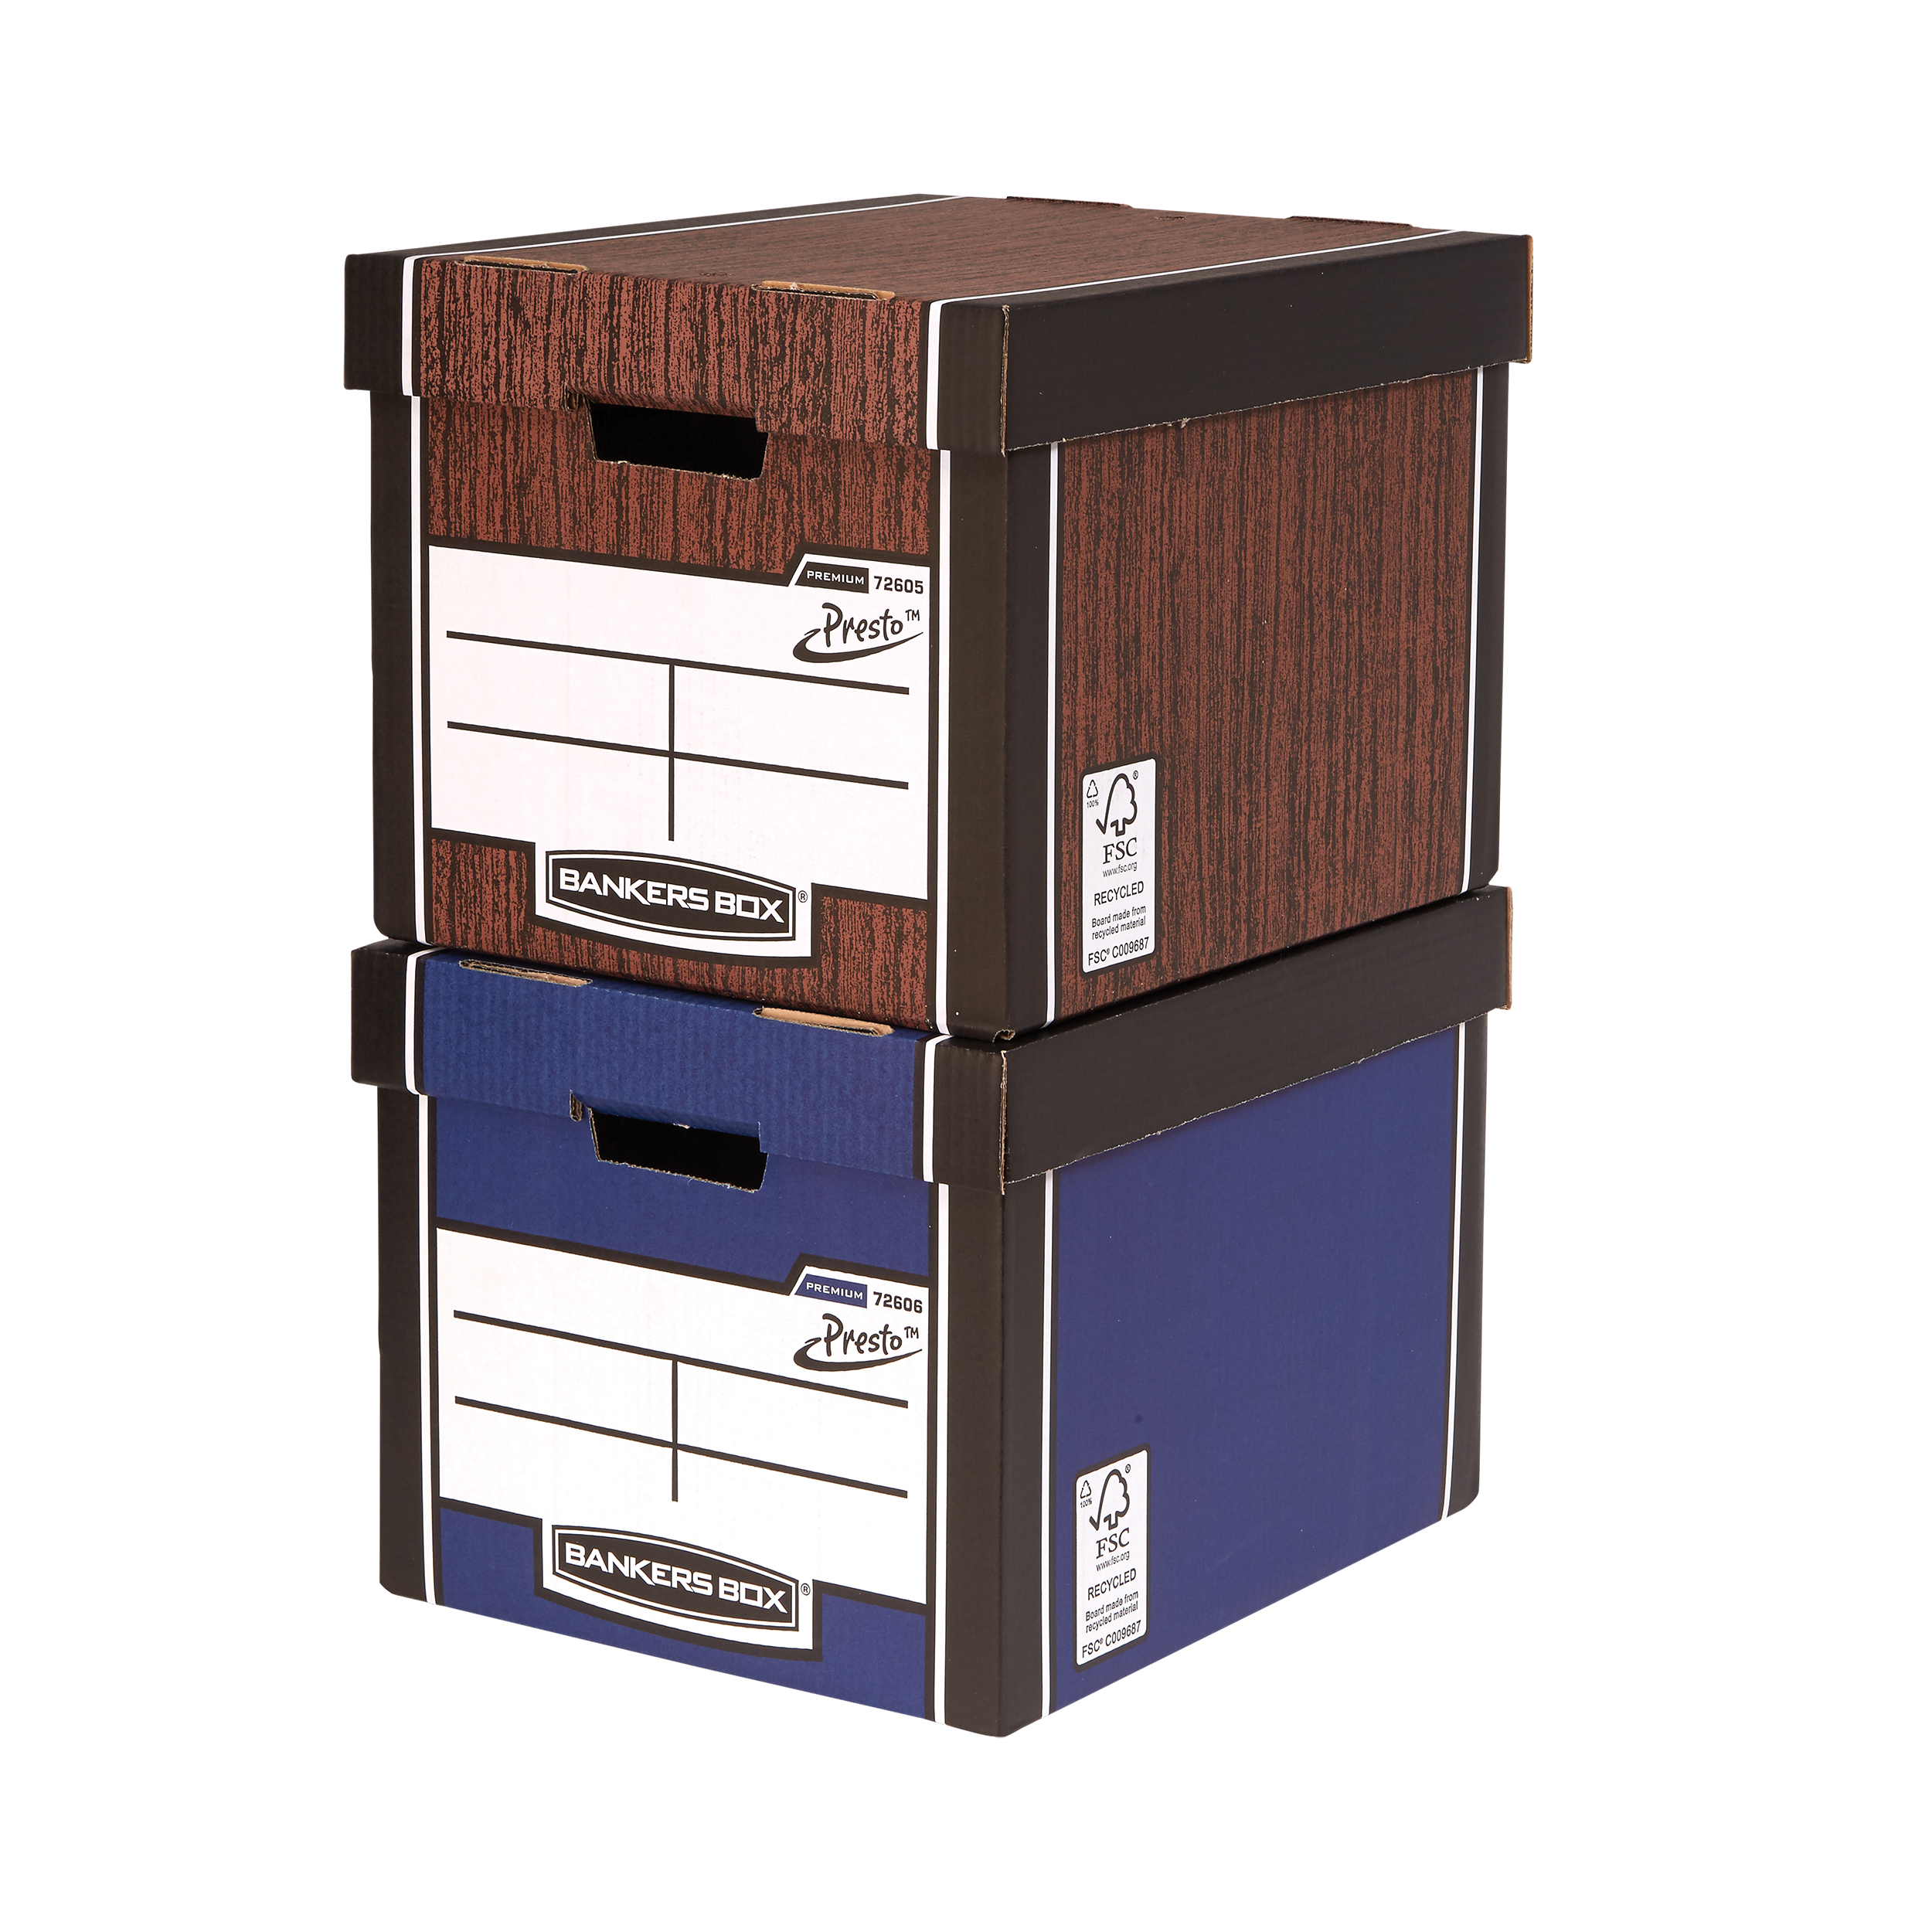 Storage Boxes Bankers Box Premium Storage Box Presto Tall Woodgrain FSC Ref 7260503 Pack 12 12 for the price of 10